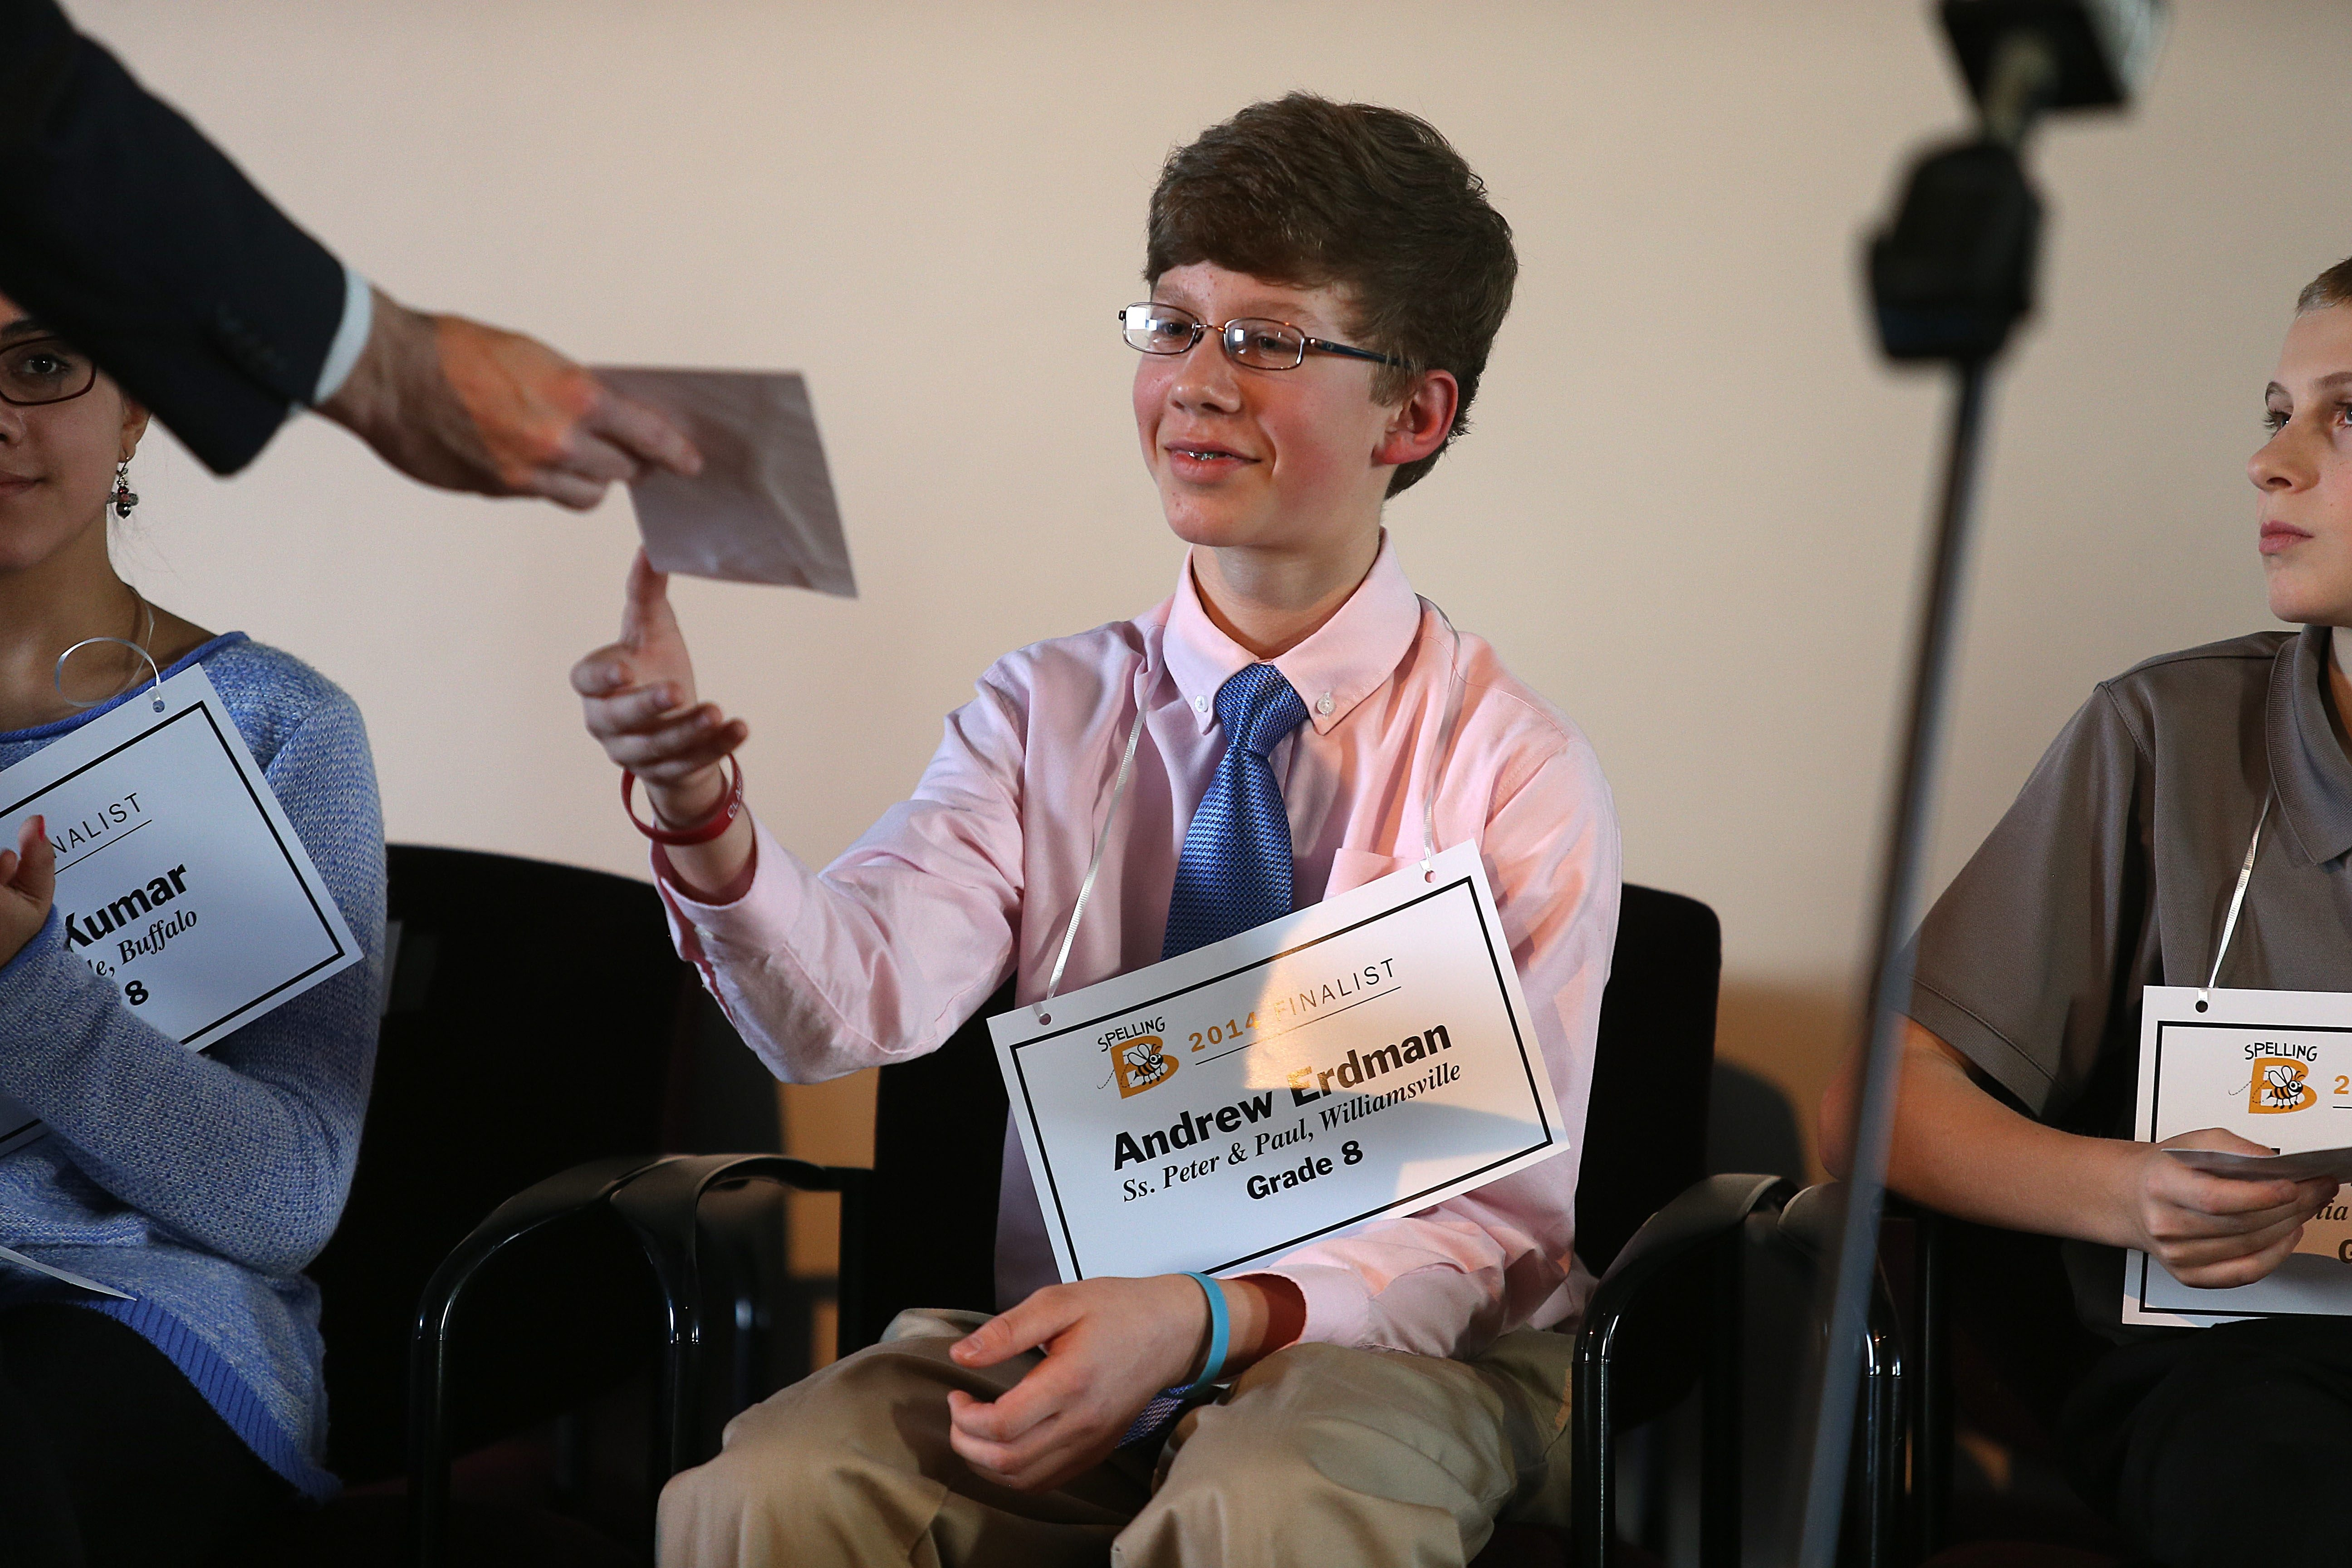 Andrew Erdman, winner of the Buffalo News Spelling Bee, accepts his prize Sunday at the Buffalo History Museum.